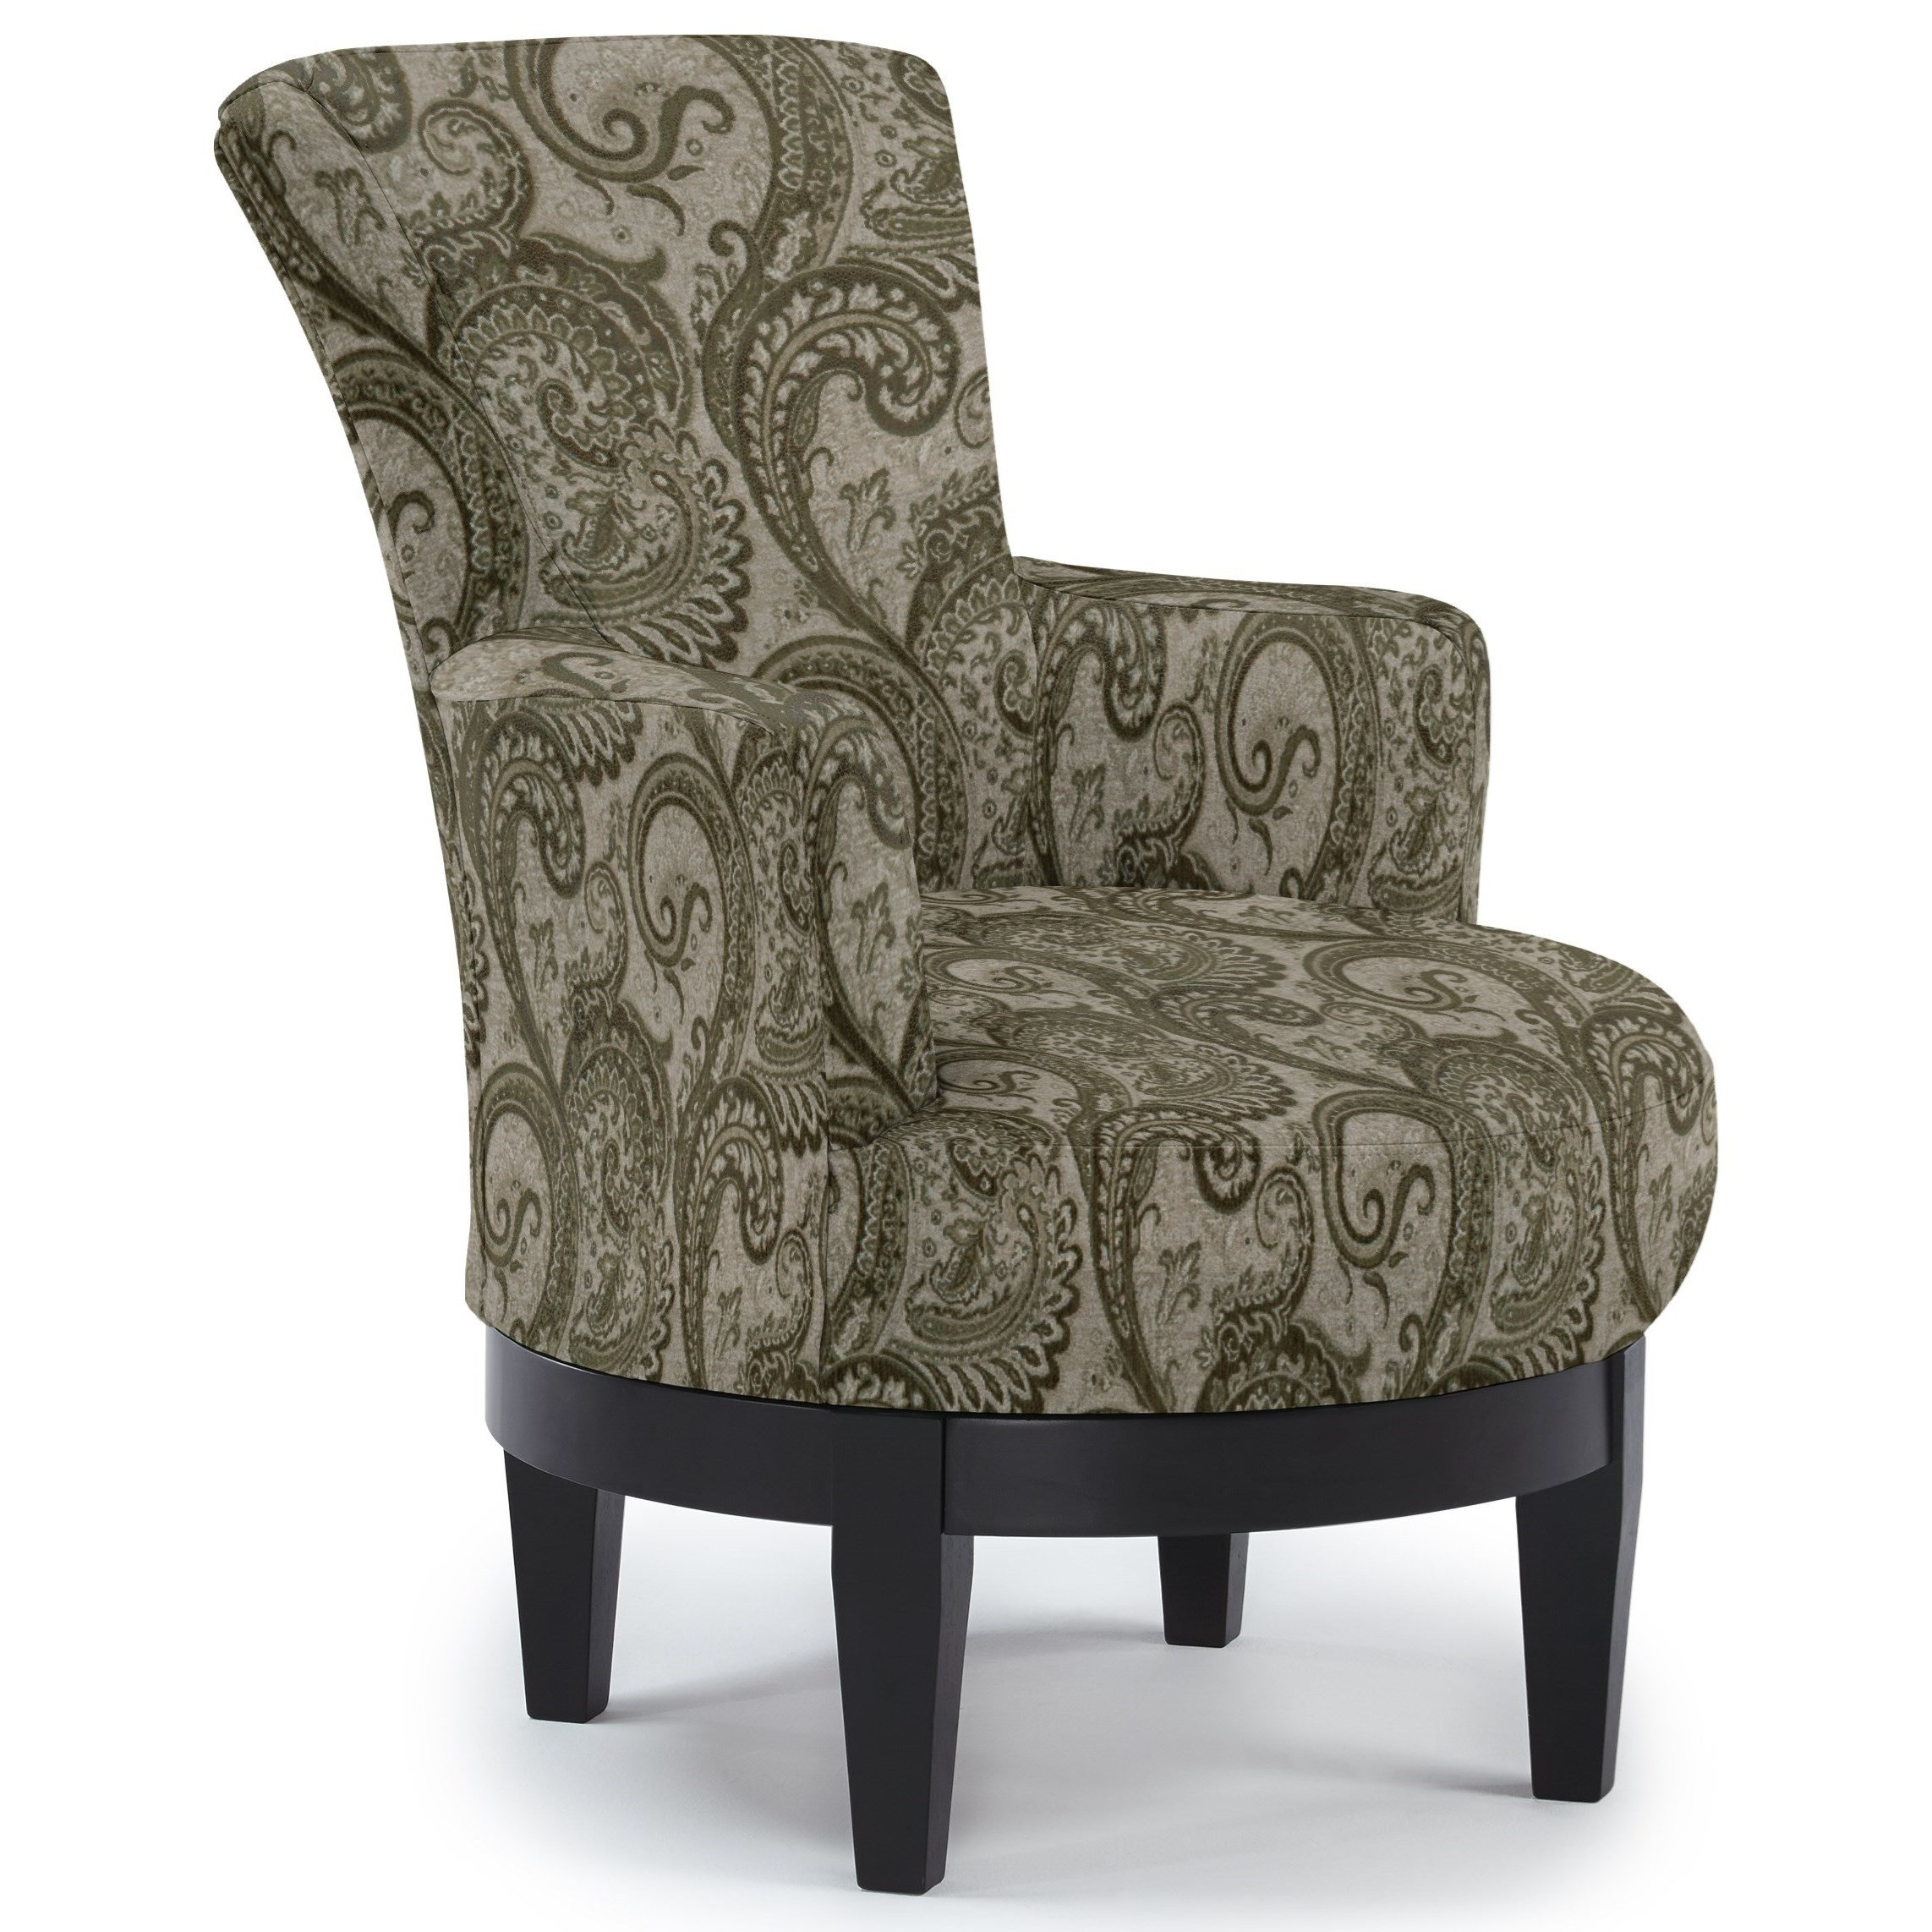 Best Home Furnishings Chairs - Swivel Barrel Swivel Chair - Item Number: 2968-28529